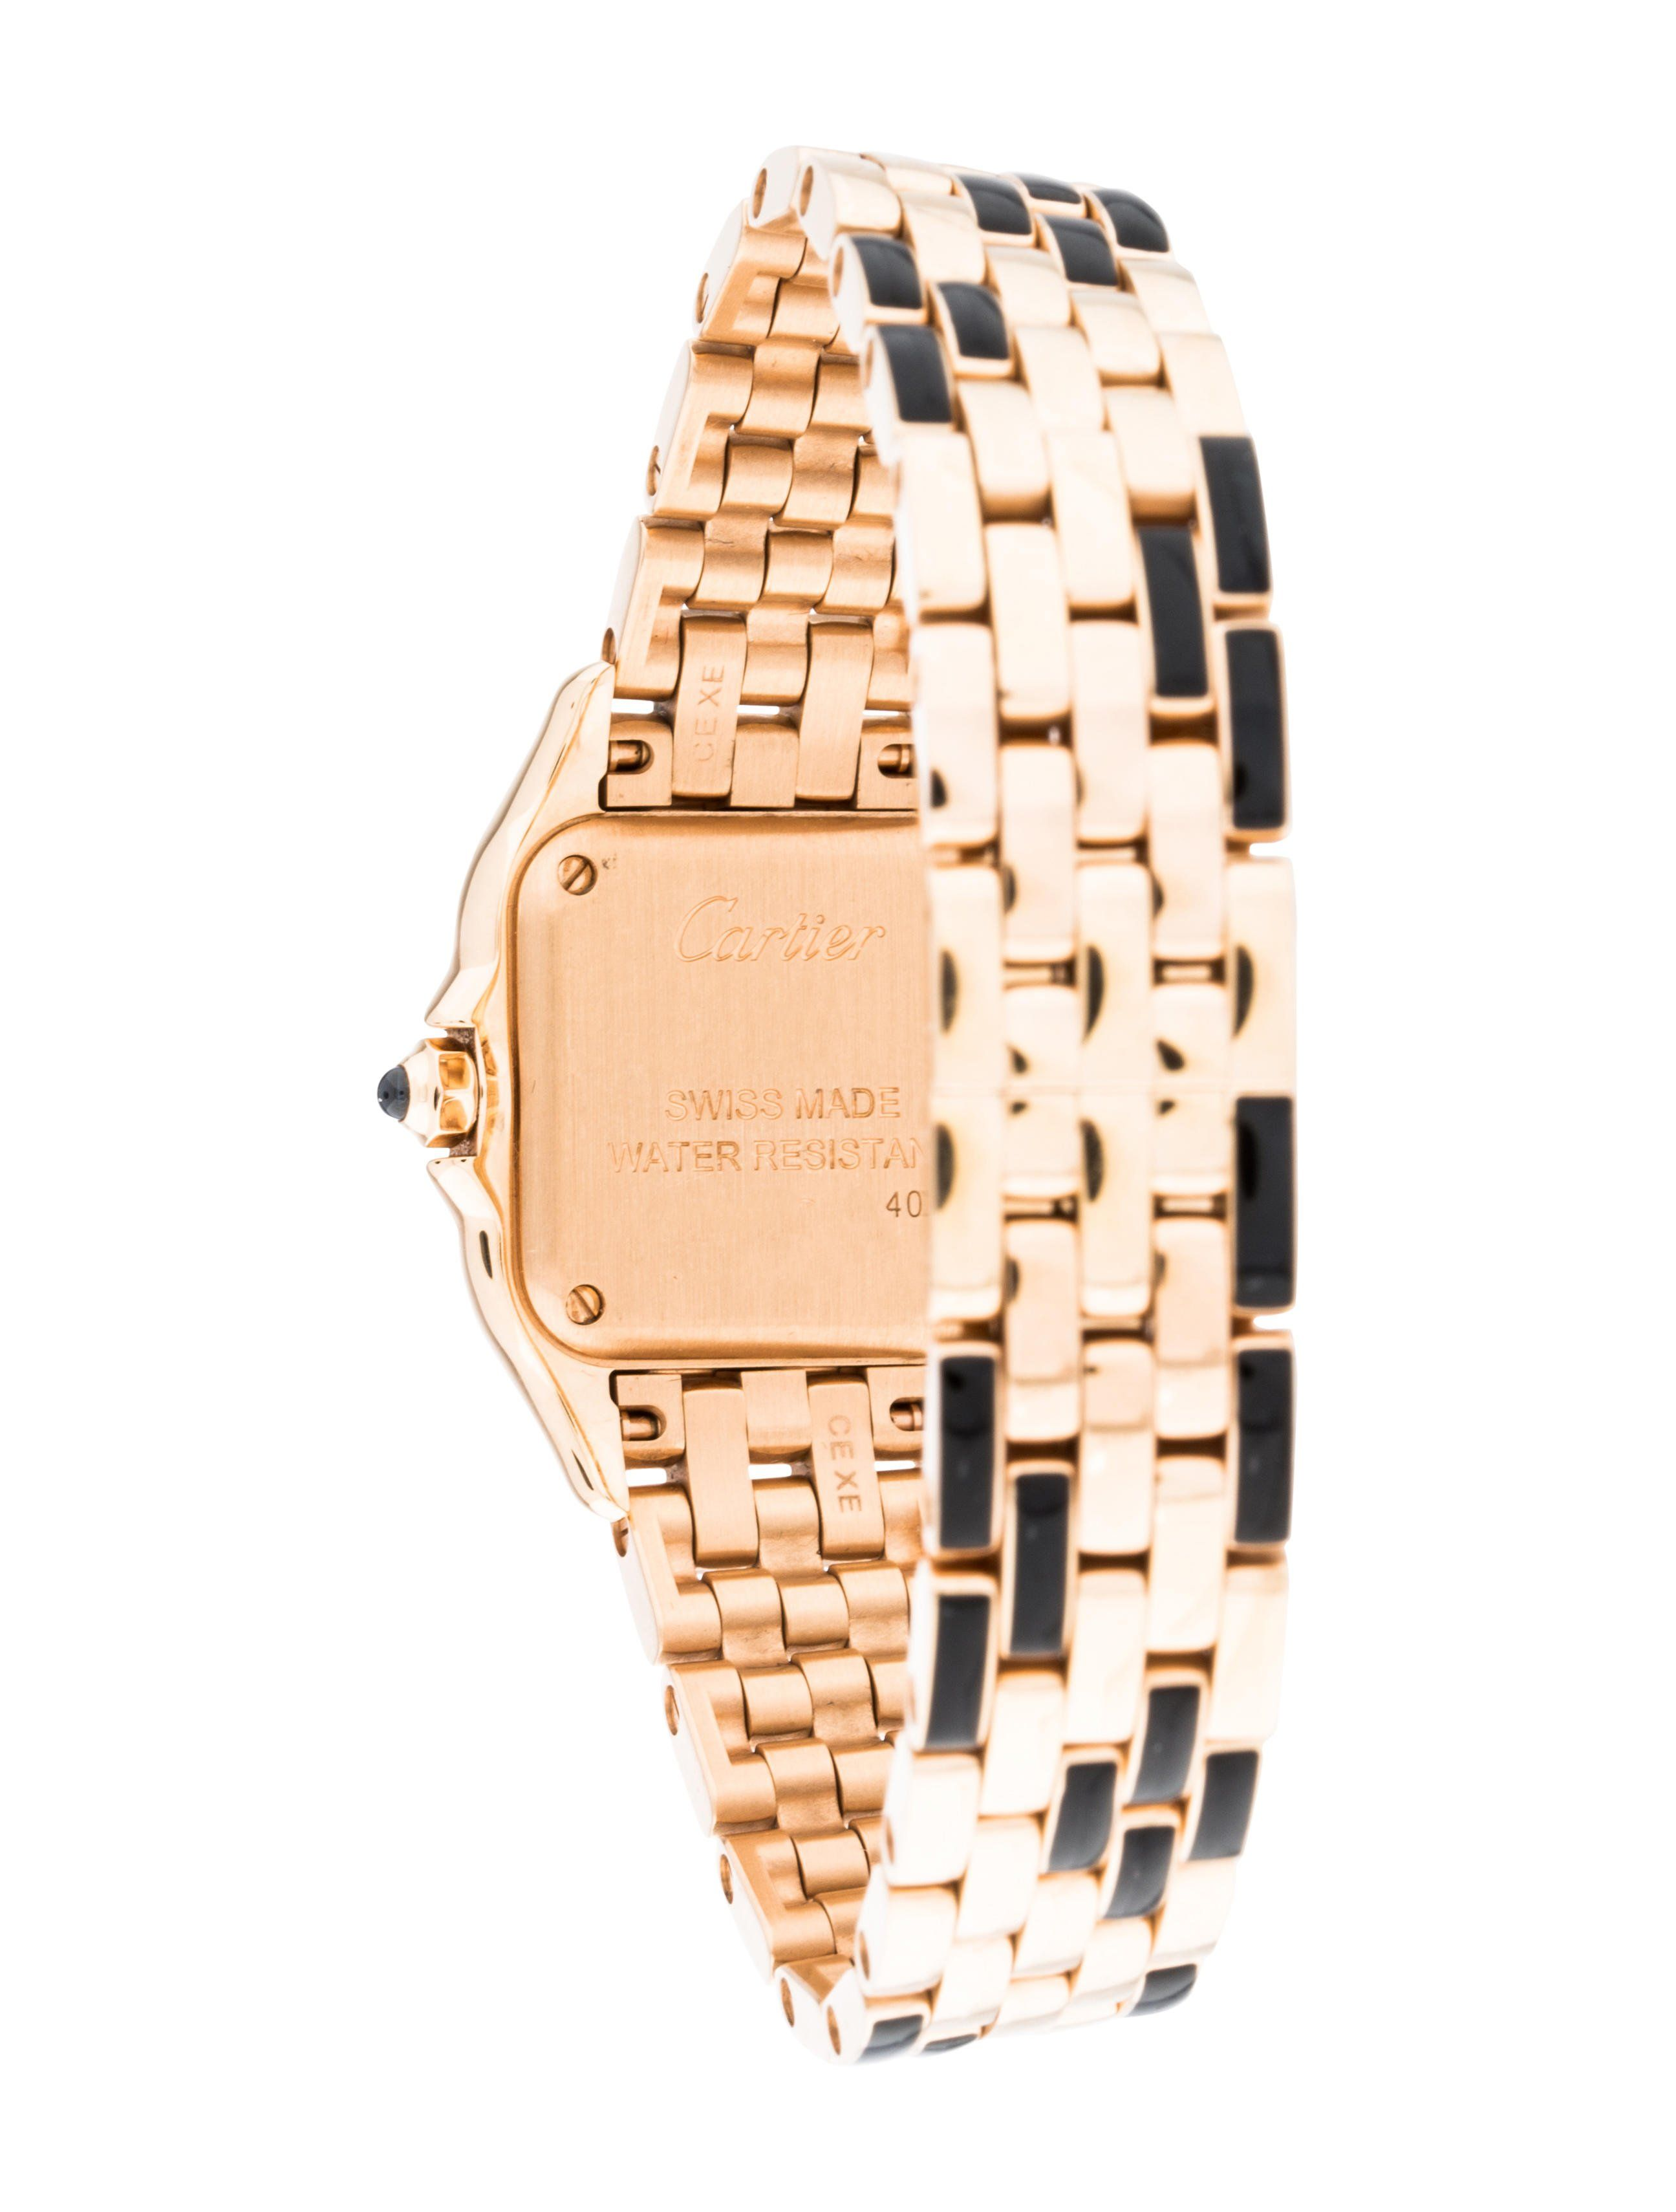 Panthere De Cartier Watch In 2019 Styles Fashion Casual Spring